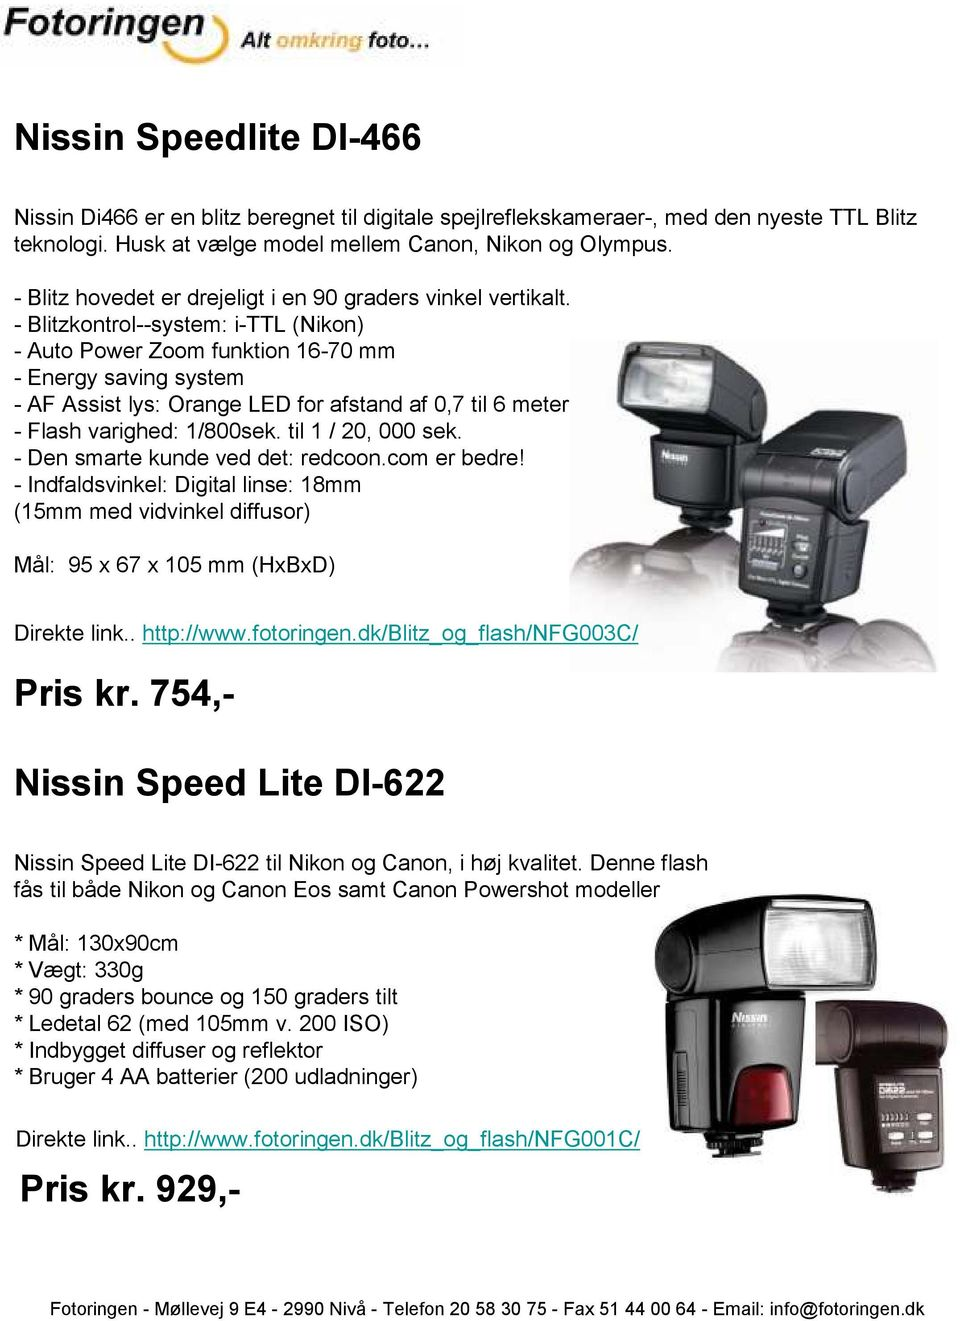 - Blitzkontrol--system: i-ttl (Nikon) - Auto Power Zoom funktion 16-70 mm - Energy saving system - AF Assist lys: Orange LED for afstand af 0,7 til 6 meter - Flash varighed: 1/800sek.